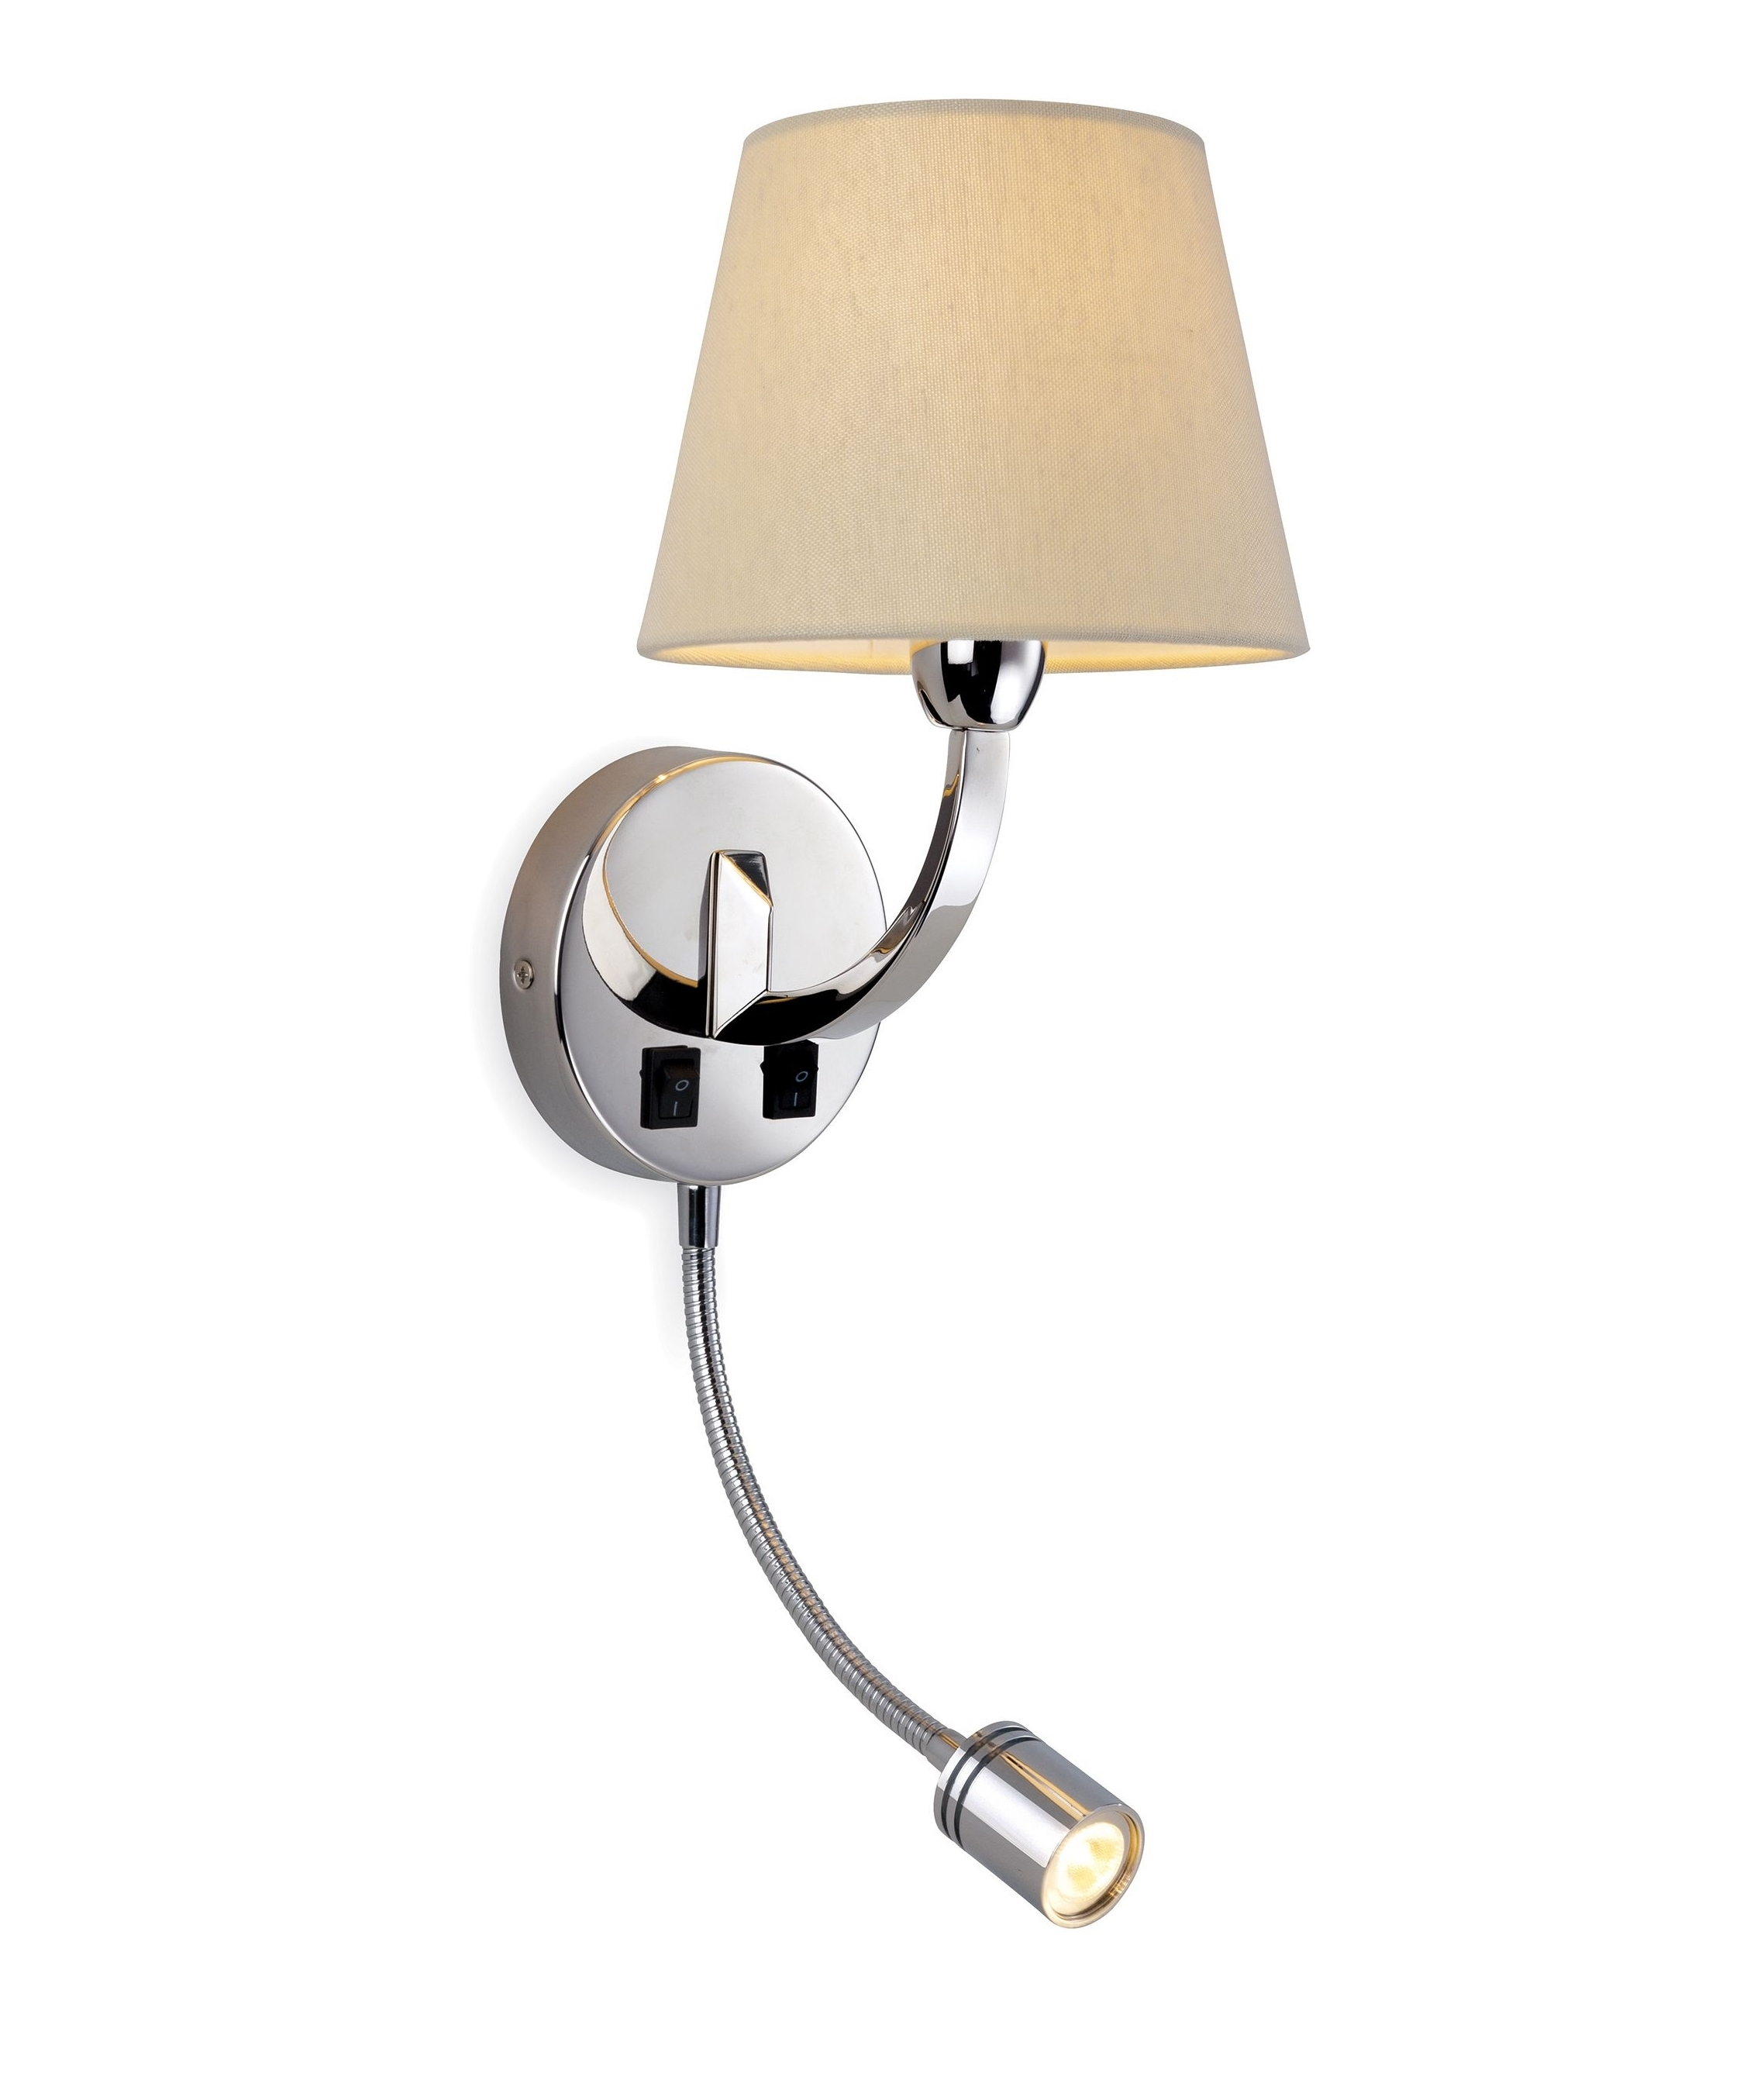 Wall Lights Adjustable : Chrome Wall Light with Adjustable LED Arm